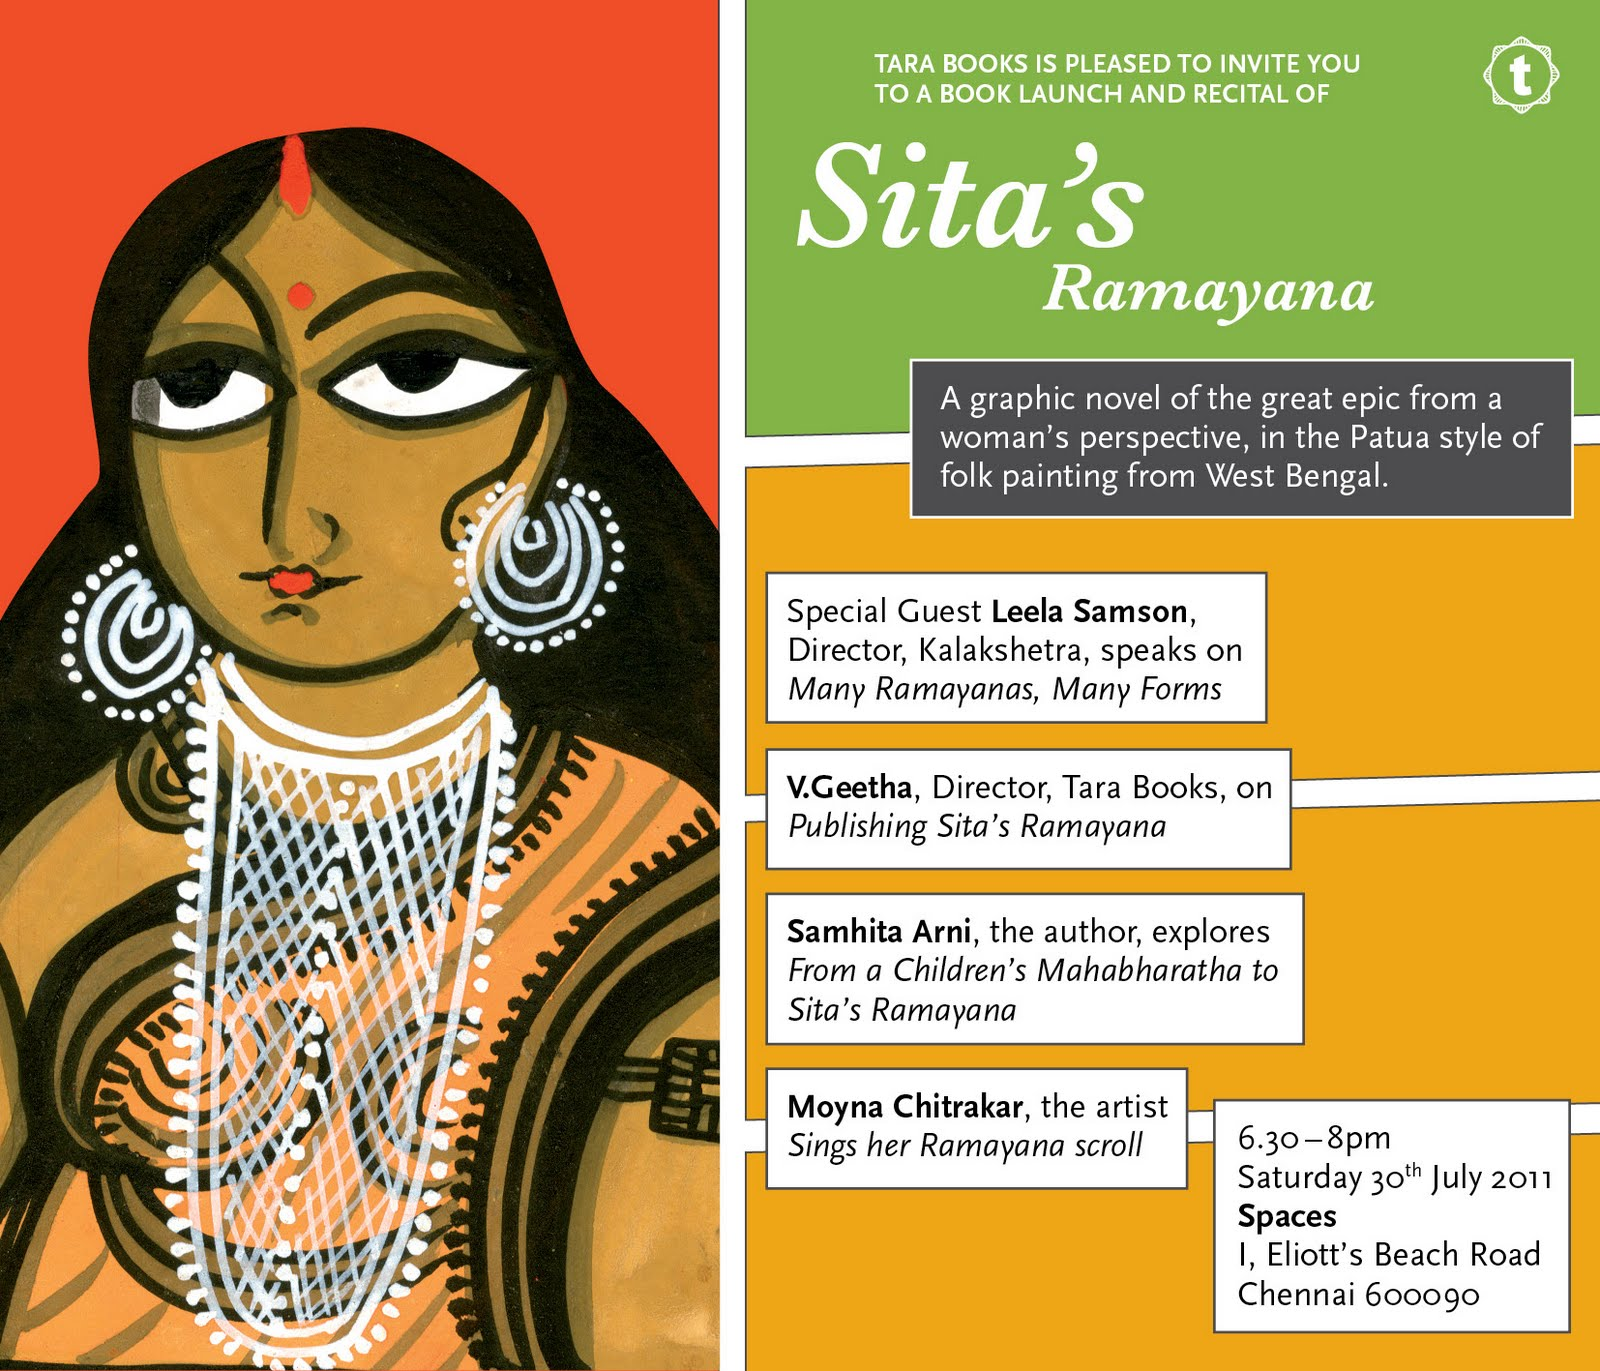 rama at sita tagalog version Definition of sita in the titi tudorancea encyclopedia meaning of sita what does sita mean proper usage and sense of the word sita information about sita in the titi tudorancea encyclopedia: no-nonsense, concise definitions.